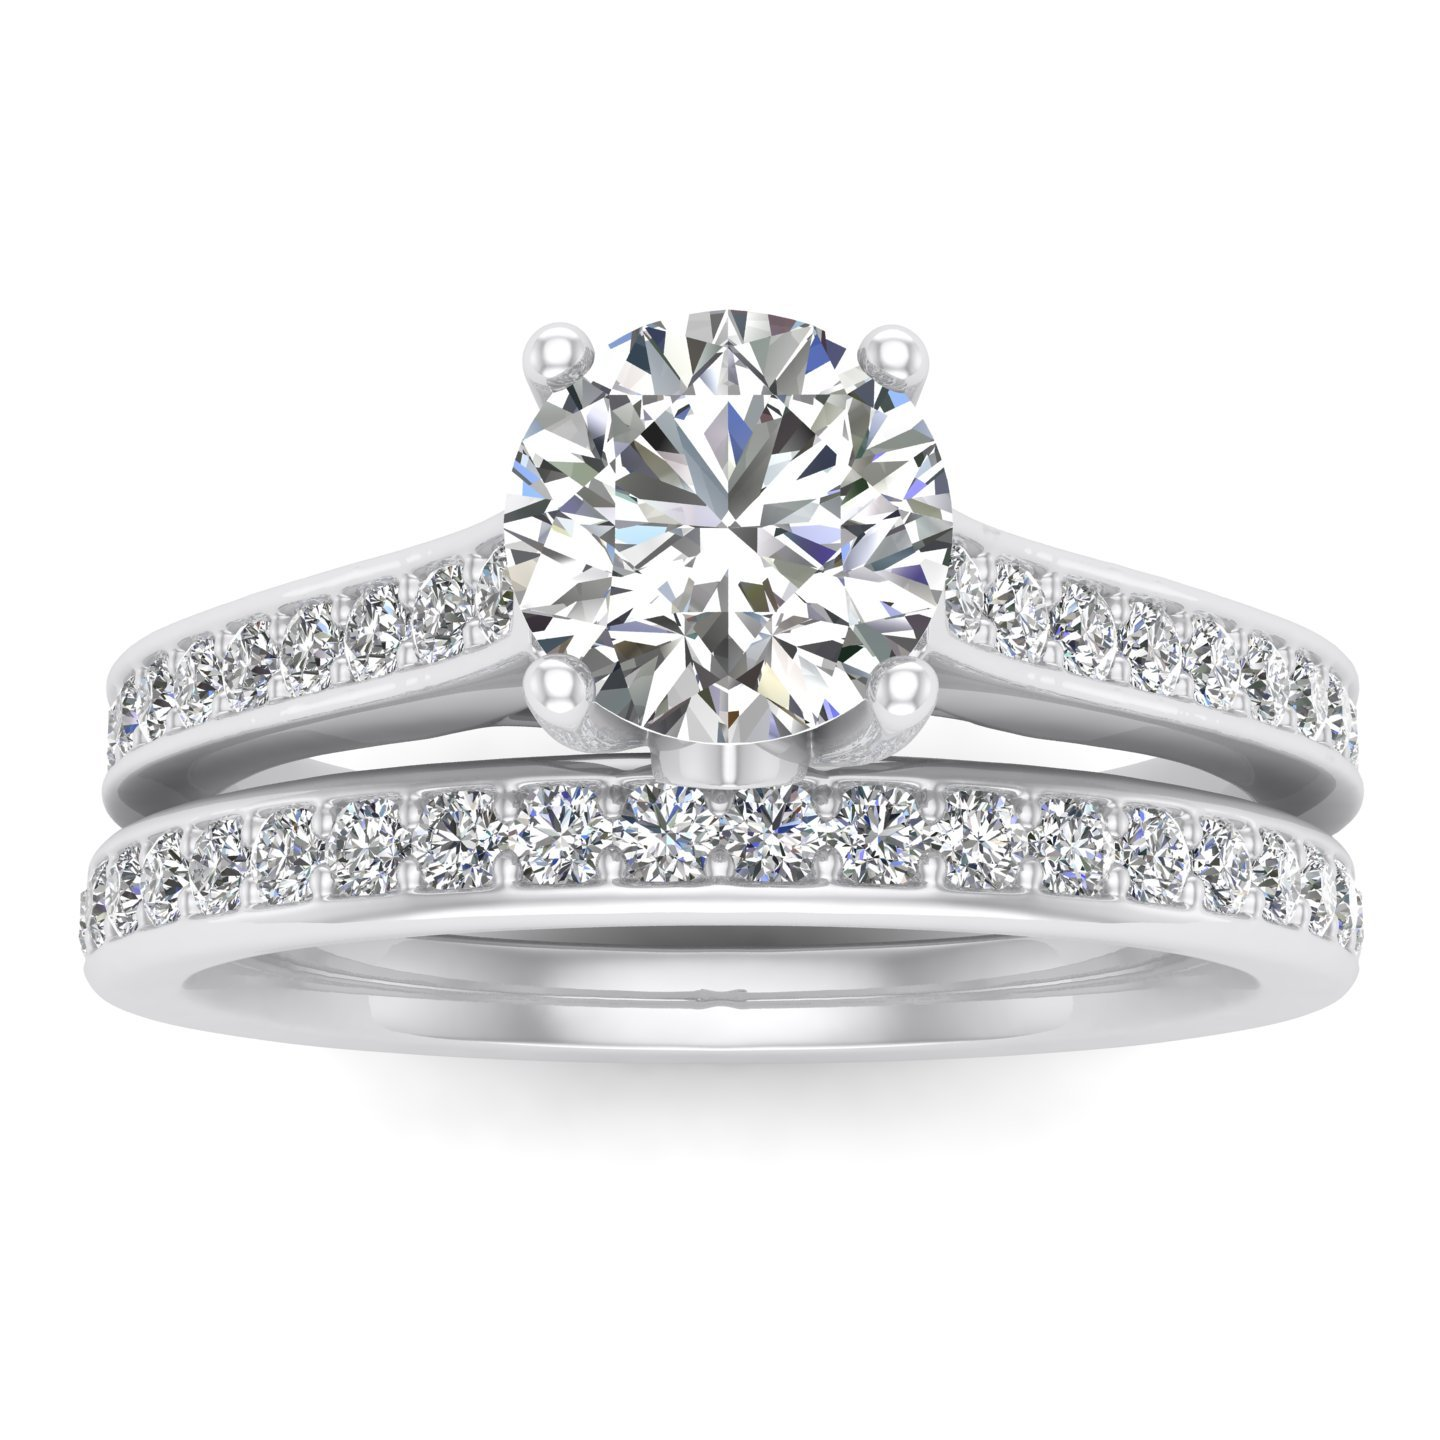 5/8ct Diamond Bridal set in 10k White Gold (10K Gold, L-M, I2-I3, 5/8ctw)